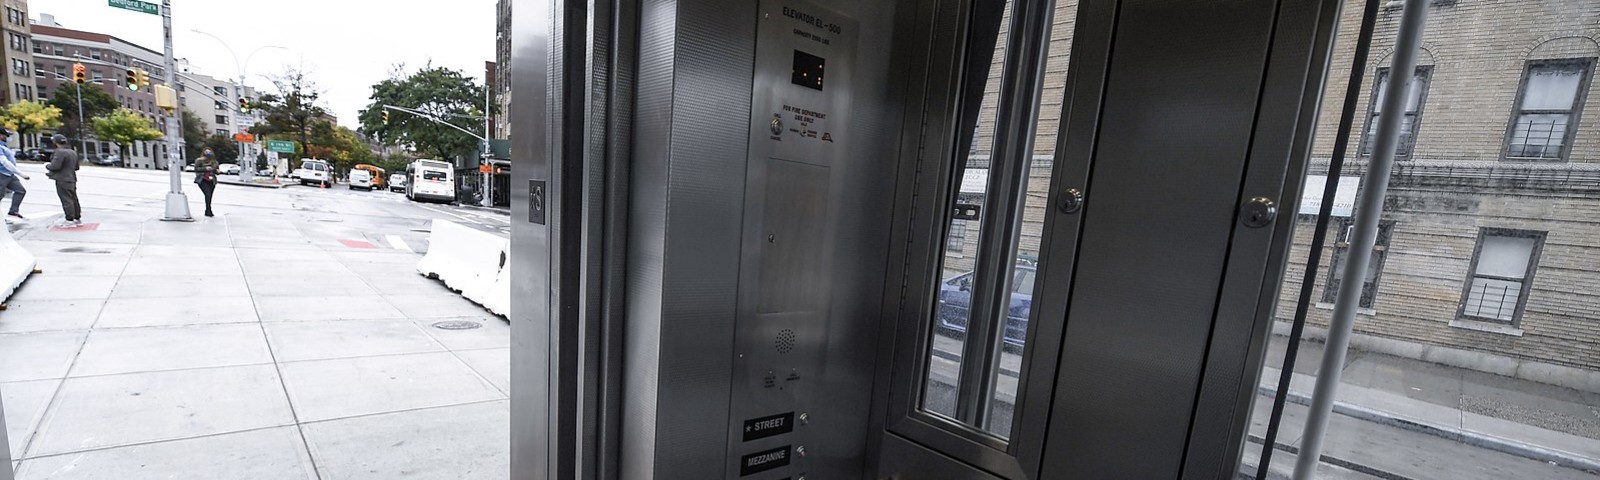 Photo of an intersection from the inside of a subway elevator. Courtesy of Marc A. Hermann / MTA New York City Transit.